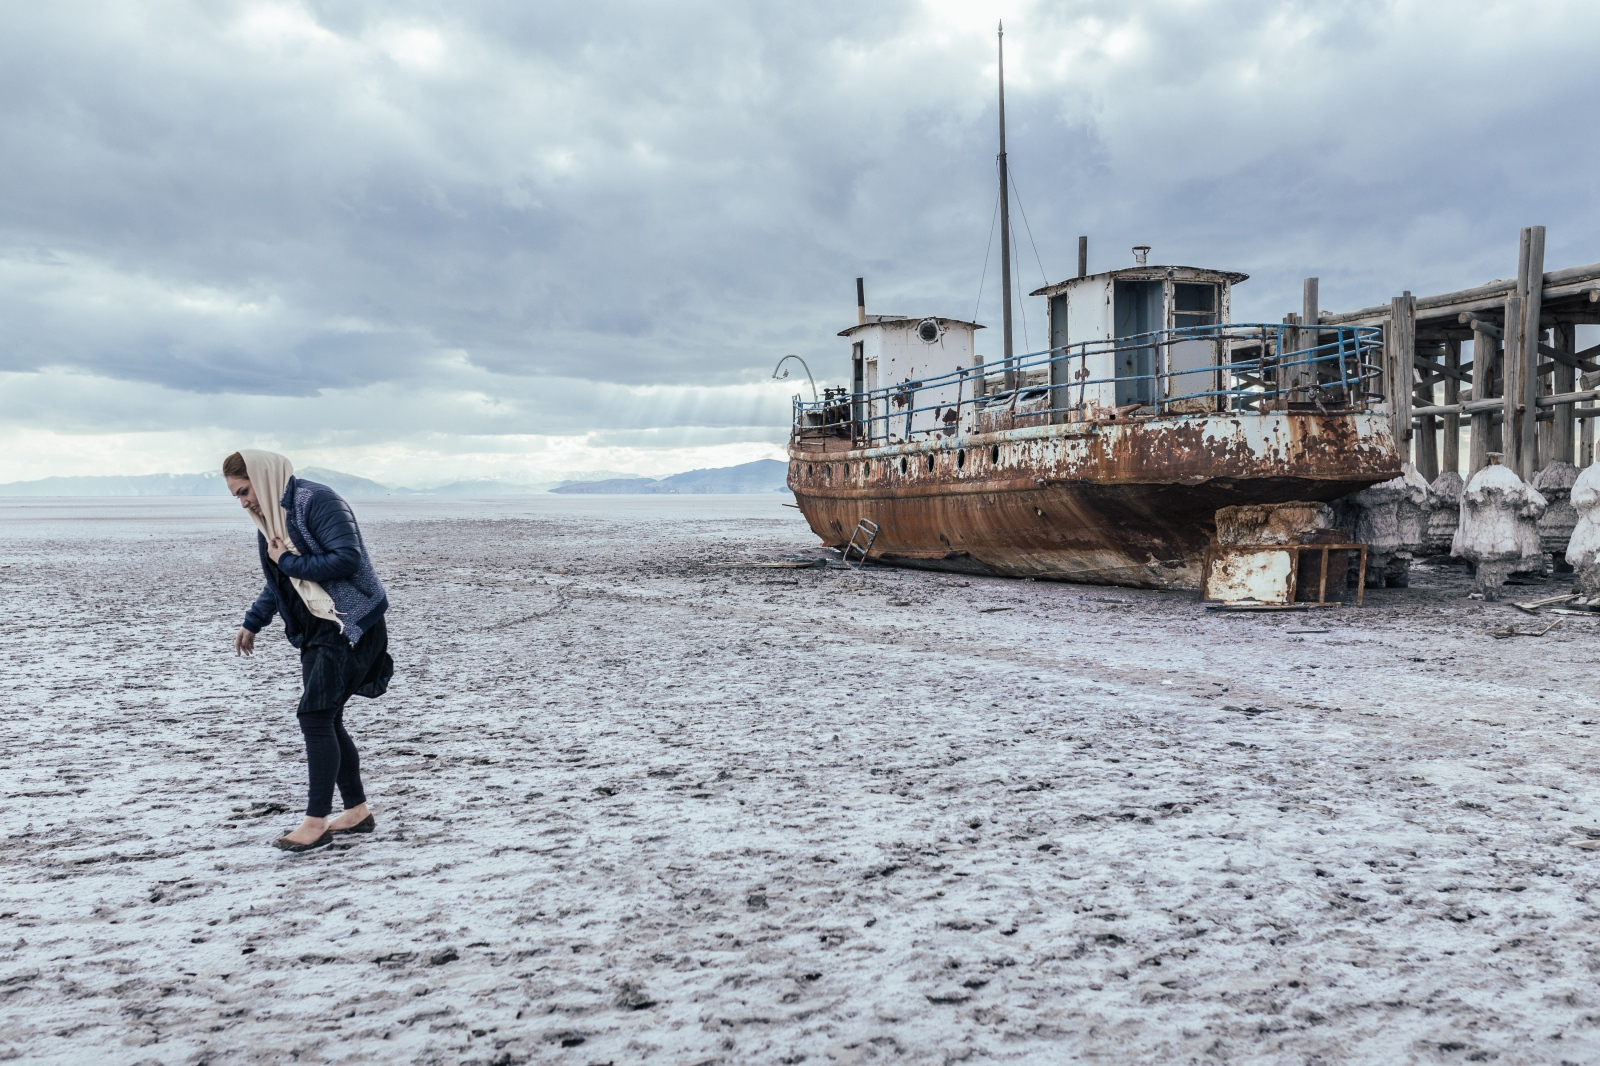 A dilapidated ship located at the northeast of Lake Urmia. Sheikh Wali used to be one of the heavily traveled touristic villages. by the lake becoming dry, the value of the surrounding lands were reduced and created great financial problems for families. Lake Urmia |East-Azerbaijan|Iran.2015